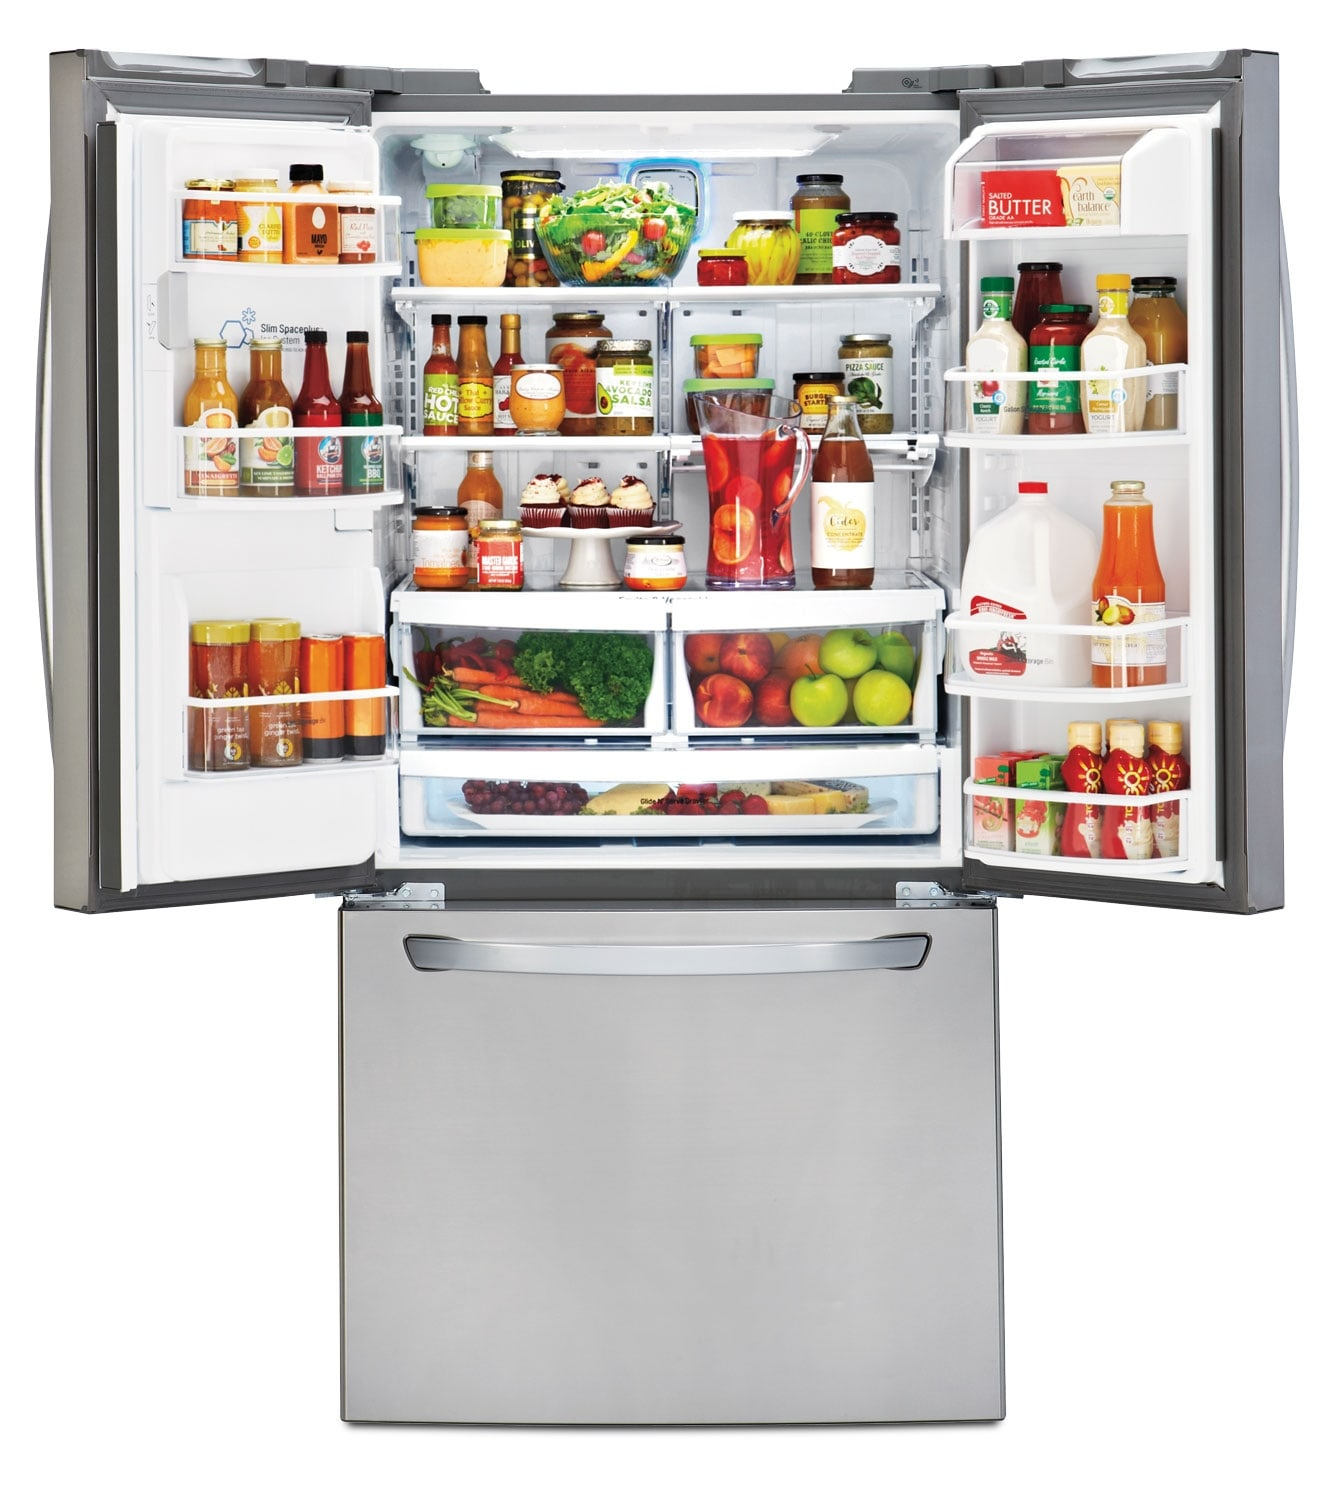 1500 #A75A24 LG Appliances Stainless Steel French Door Refrigerator (24.2 Cu. Ft  picture/photo Home Depot Refrigerators French Doors 35191330